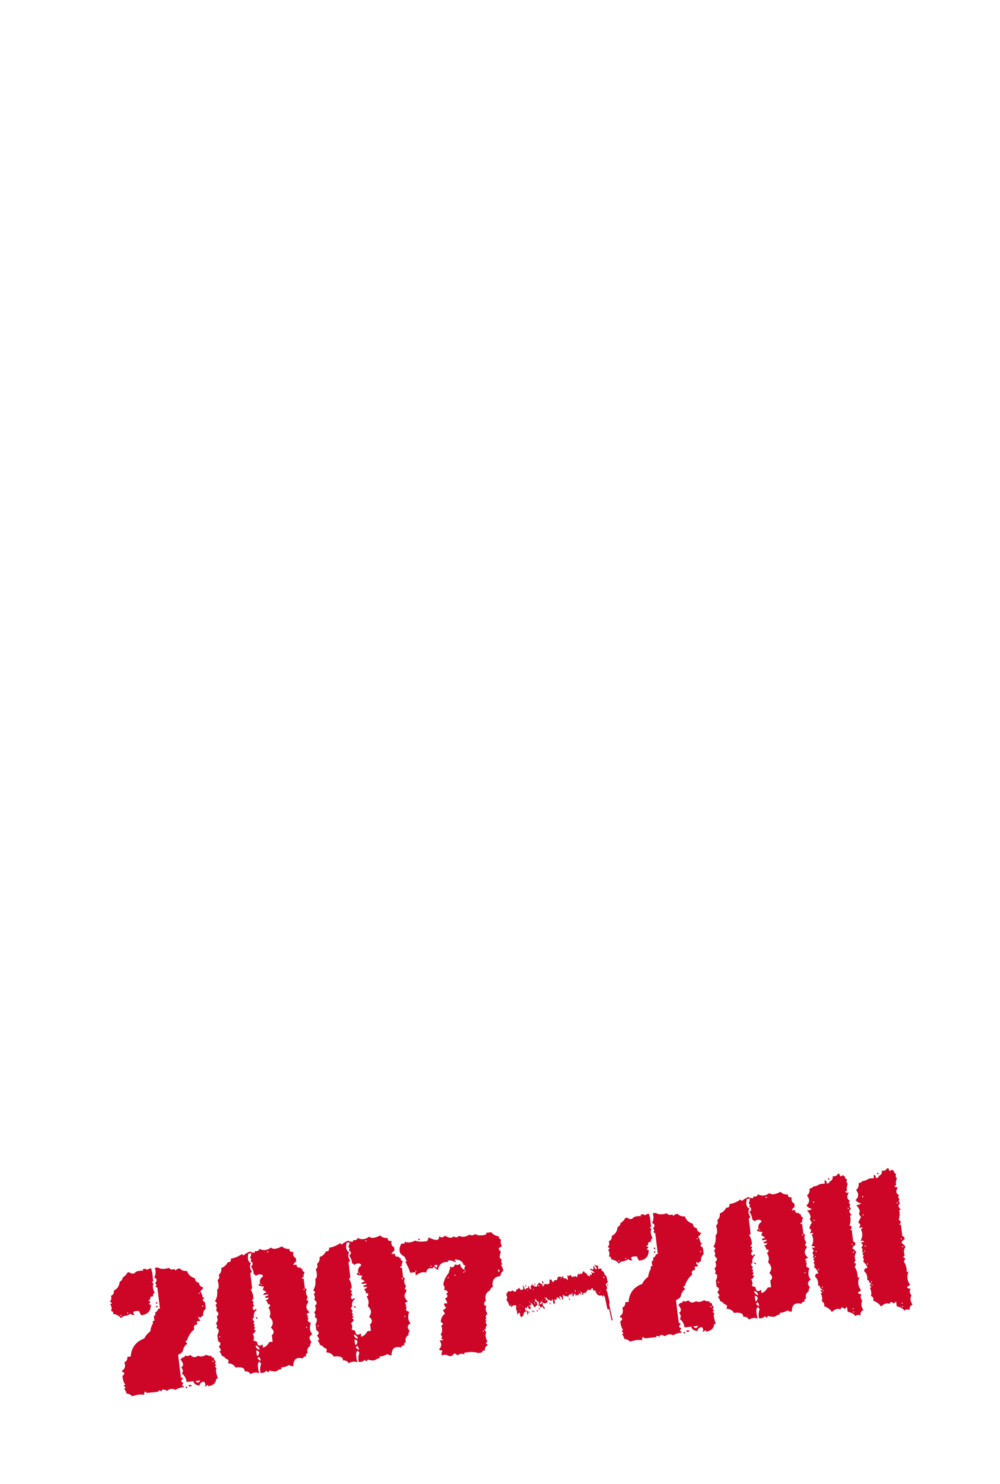 CMR DATES HIGH RES PNG.png